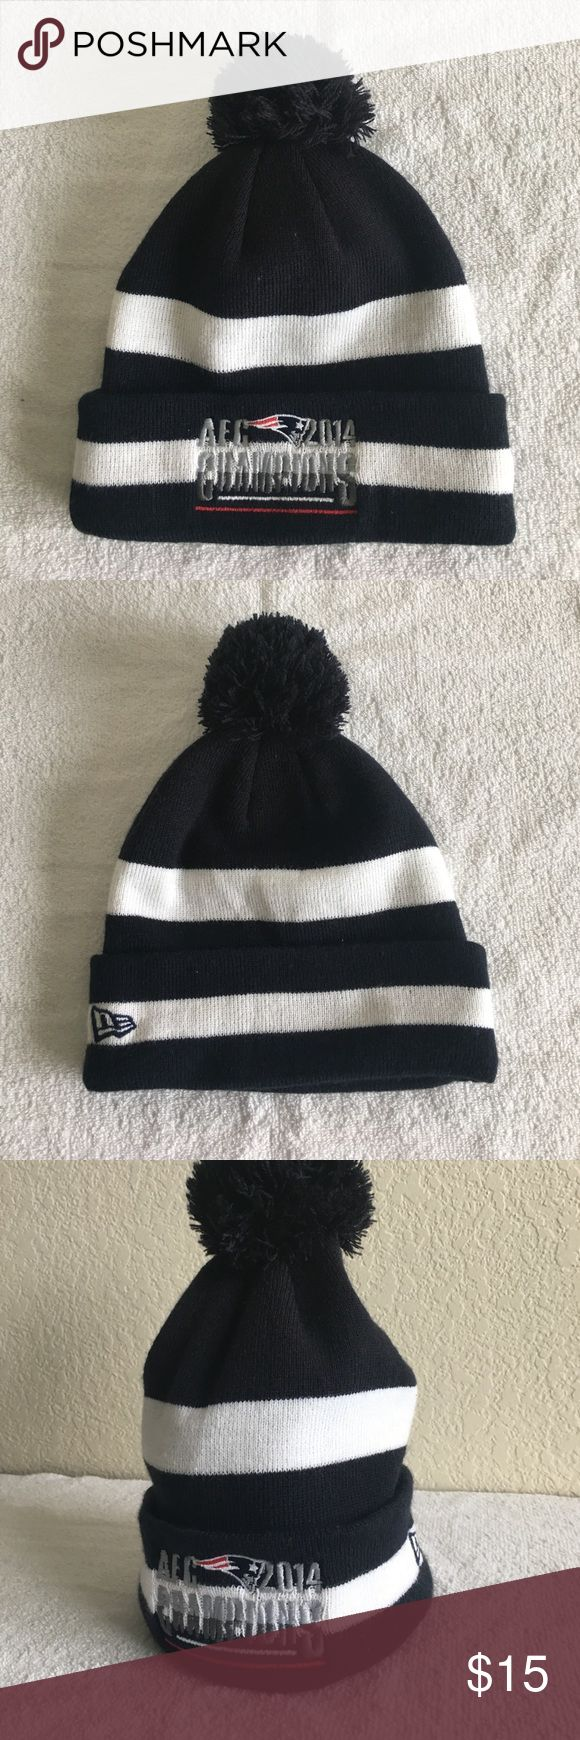 New Era New England Patriots '14 AFC Champs Beanie New Era New England 2014 AFC Champions Pom Beanie. 100% acrylic. Worn Once New Era Accessories Hats